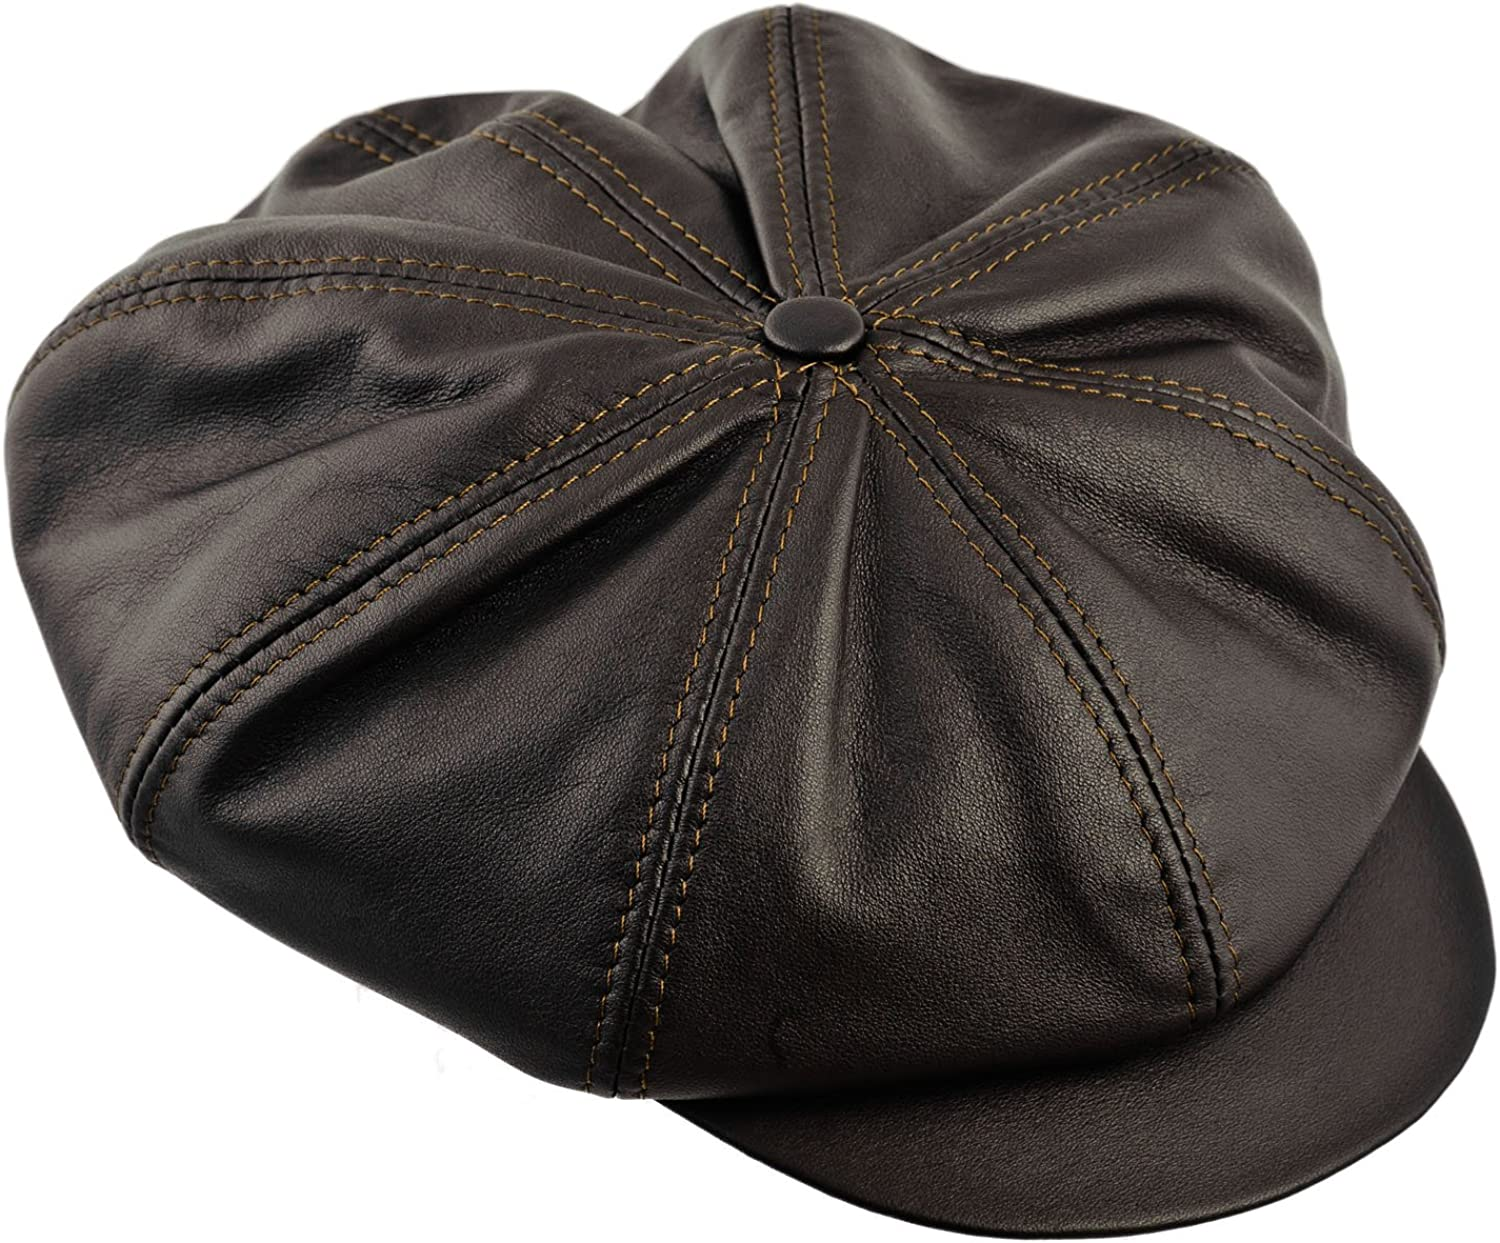 Sterkowski Cattle Leather Large Crown 8 Panel Newsboy Cap